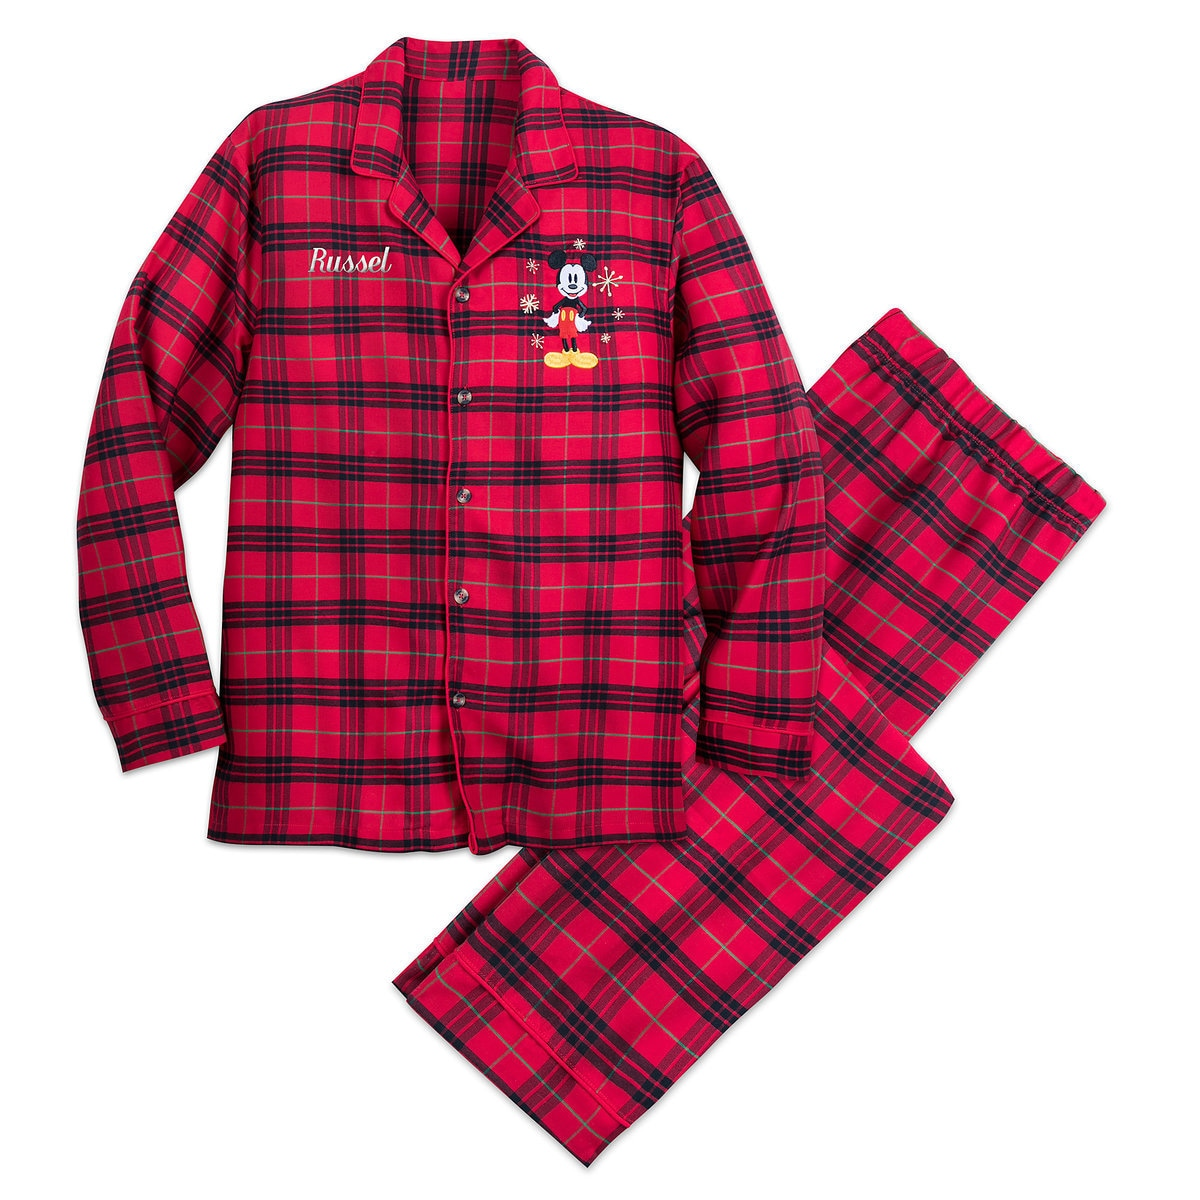 e5ceef17c Product Image of Mickey Mouse Holiday Plaid PJ Set for Men - Personalizable  # 1